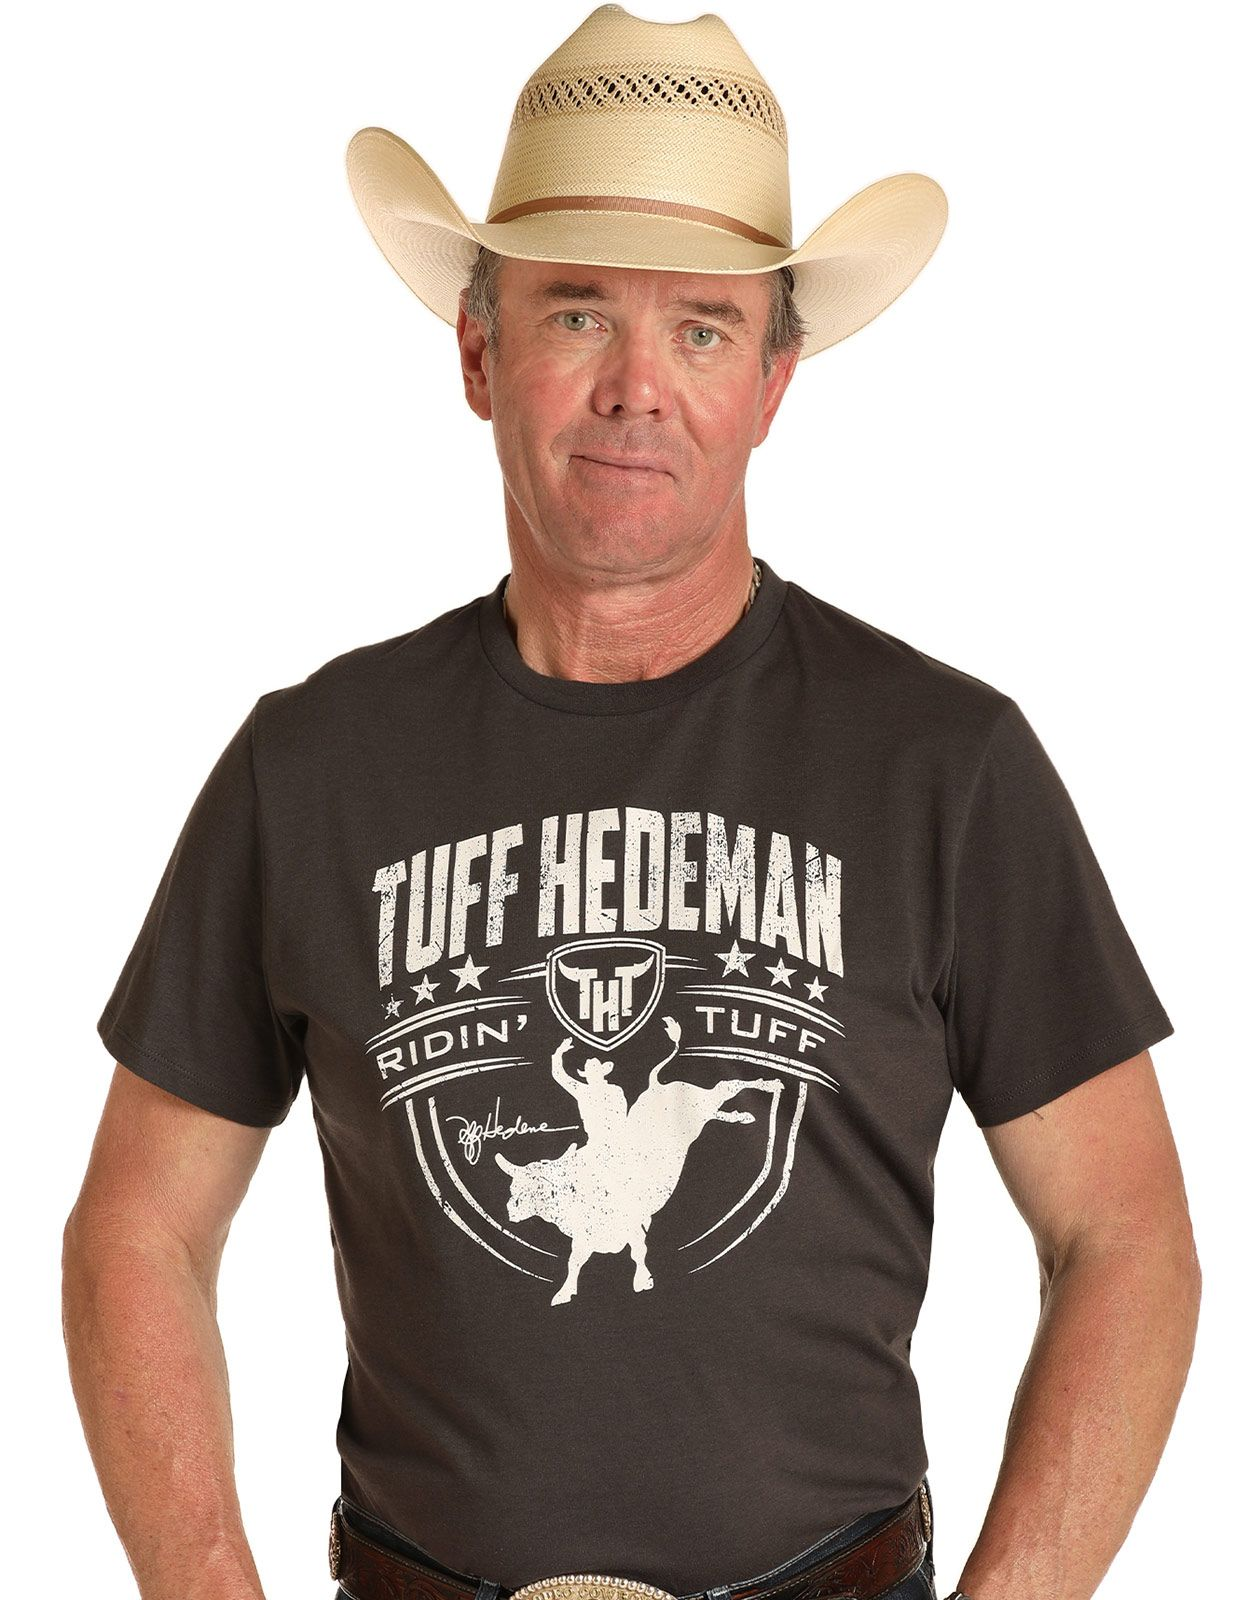 Rock & Roll Denim Men's Tuff Hedeman Short Sleeve Print Tee Shirt - Charcoal (Closeout)